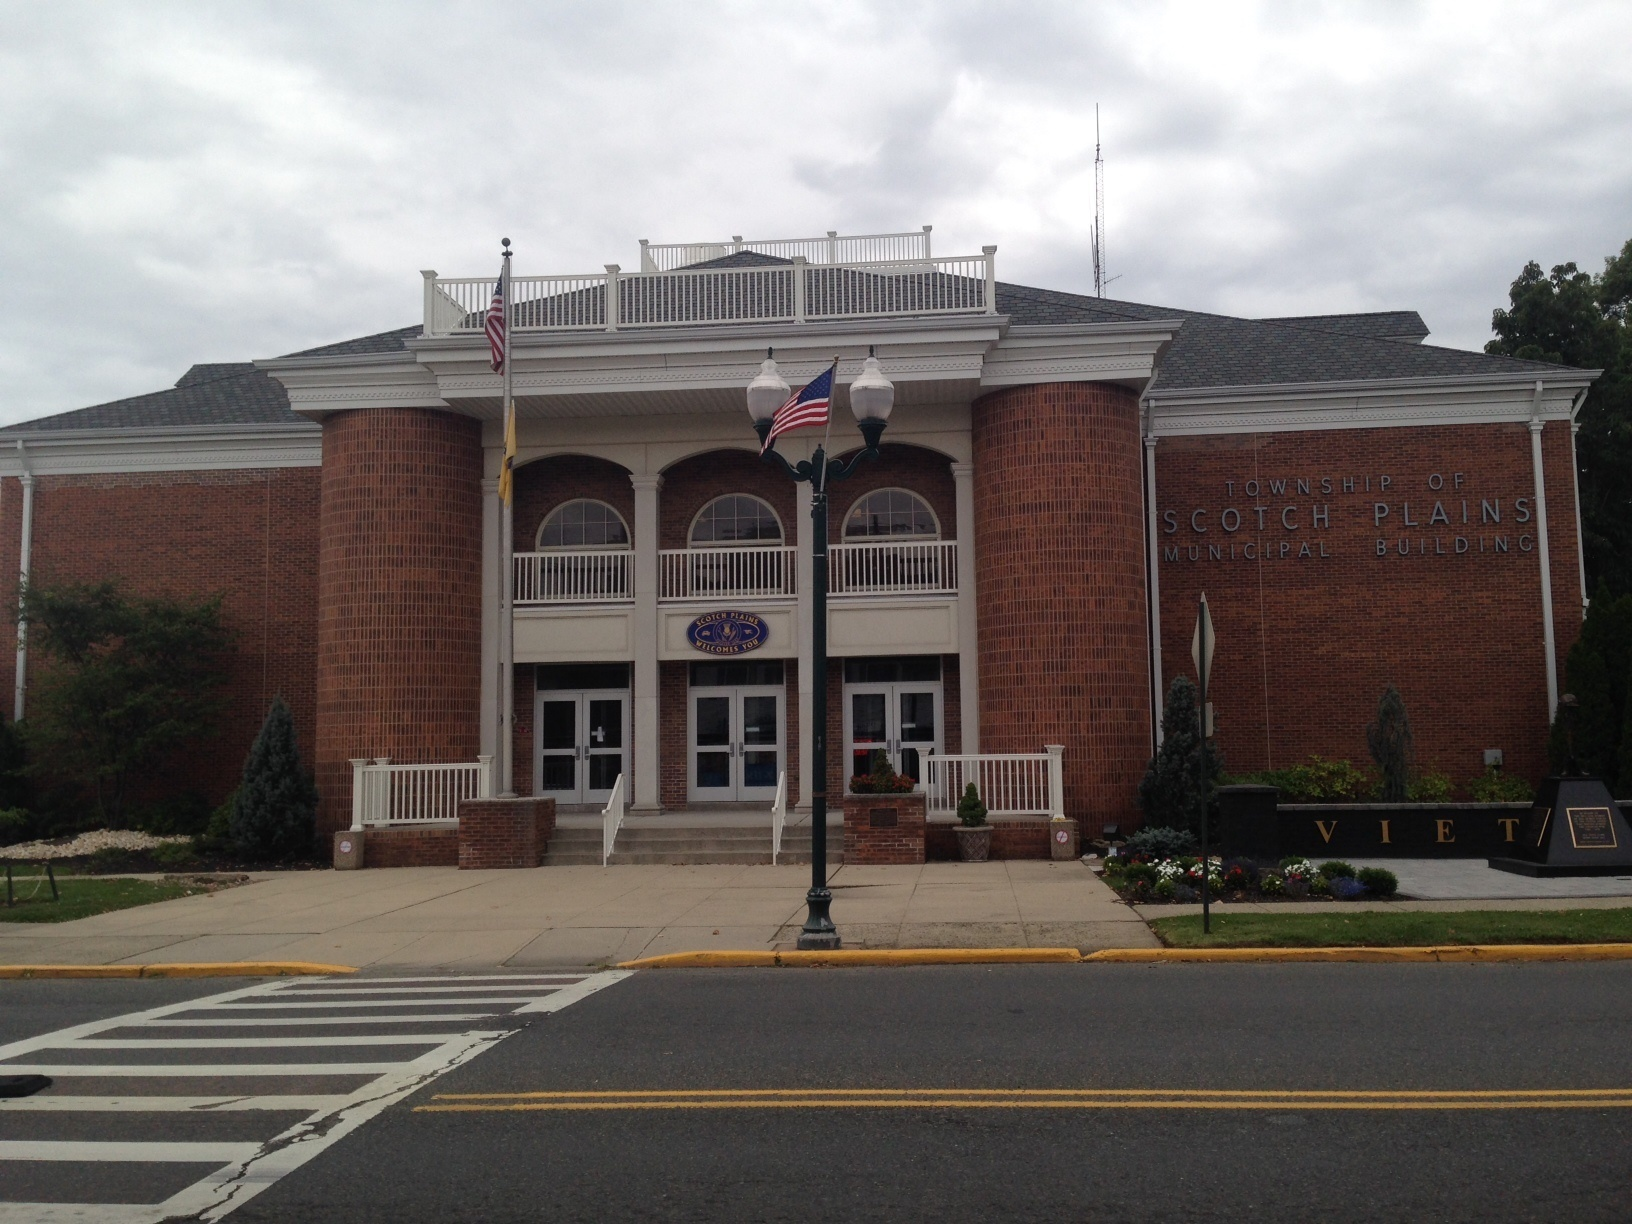 e24b458800887069ef34_Scotch_Plains_Municipal_Building.jpg